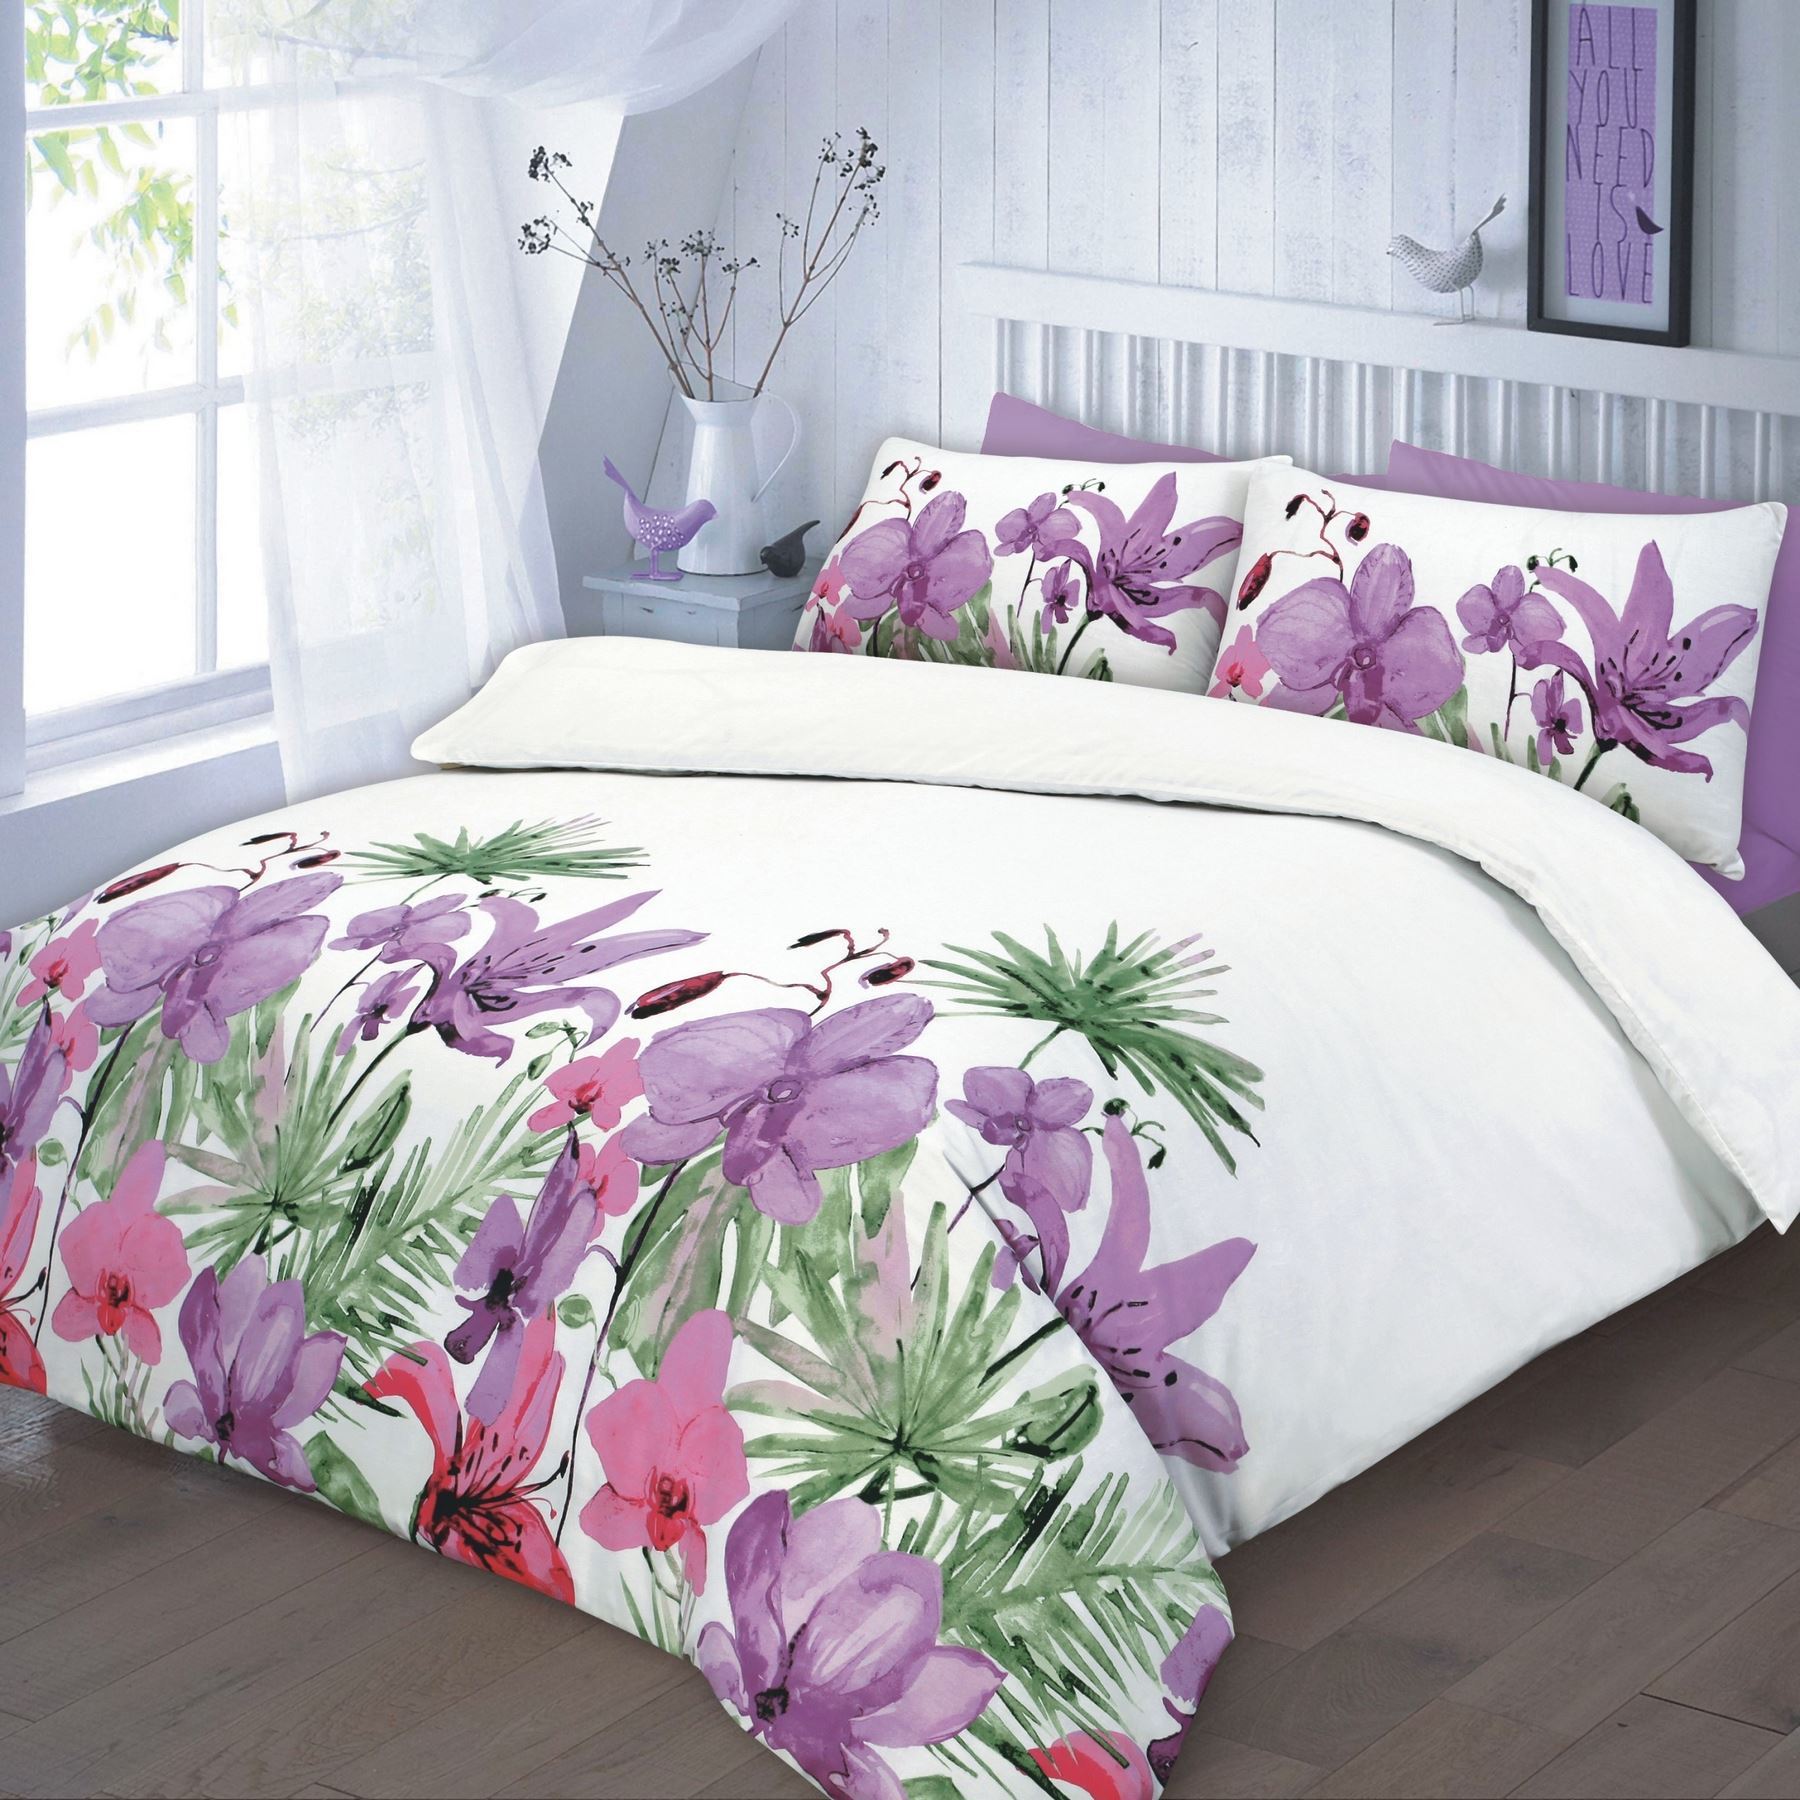 floral quilt duvet cover amp pillowcase teal pink lilac bedding  - floralquiltduvetcoveramppillowcasetealpink